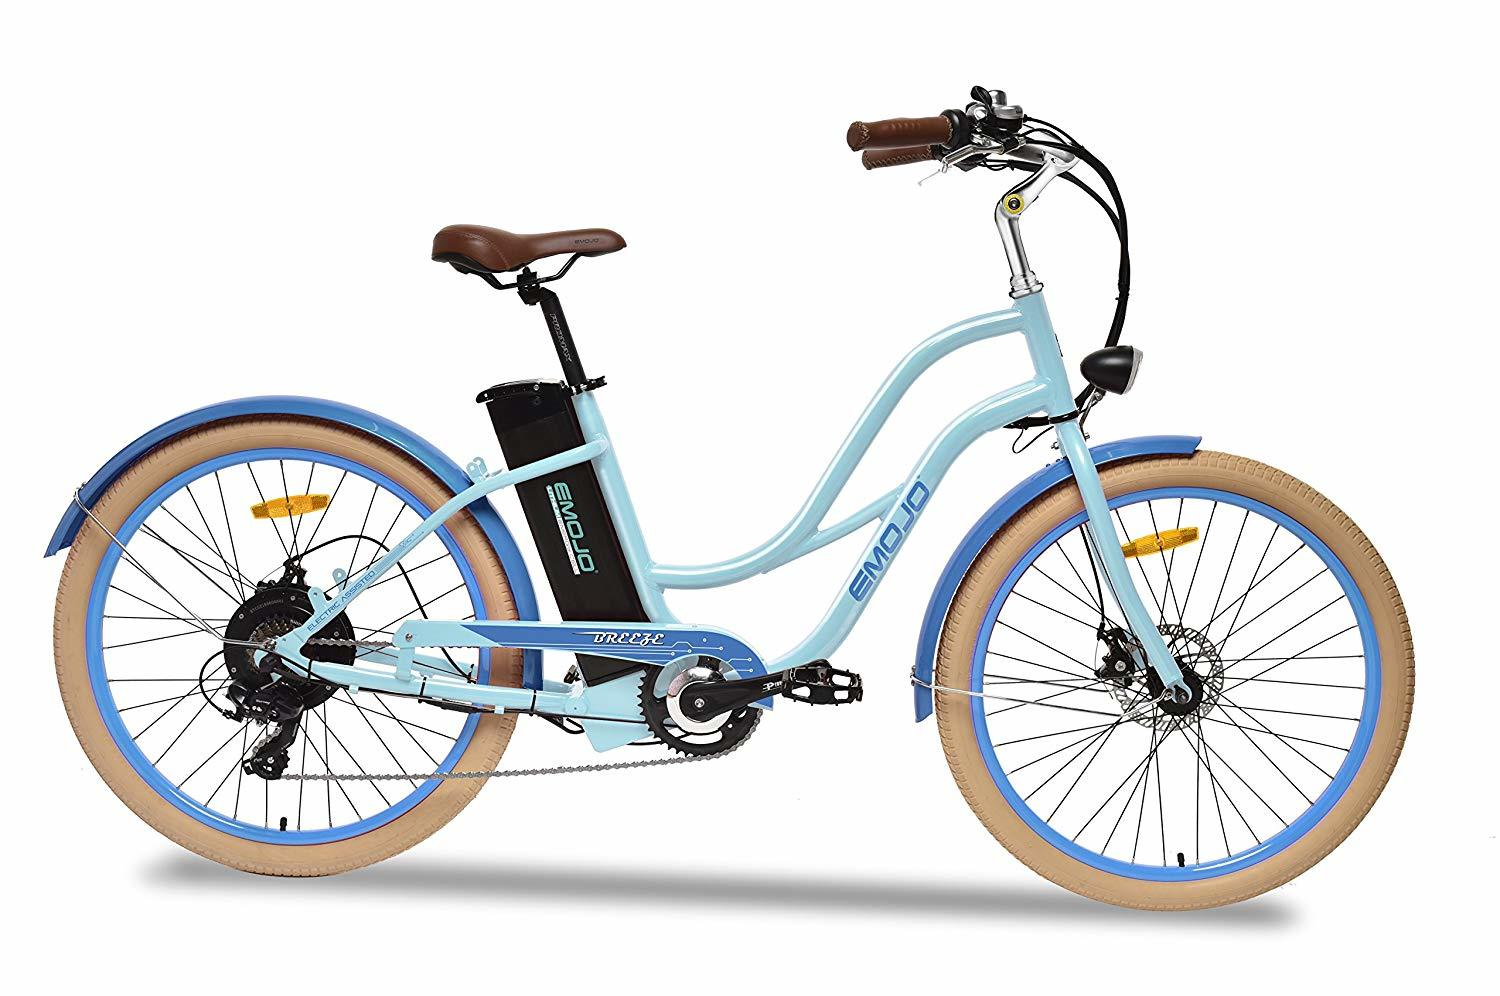 Roundup Review: Best Electric Beach Cruisers and E-Bikes